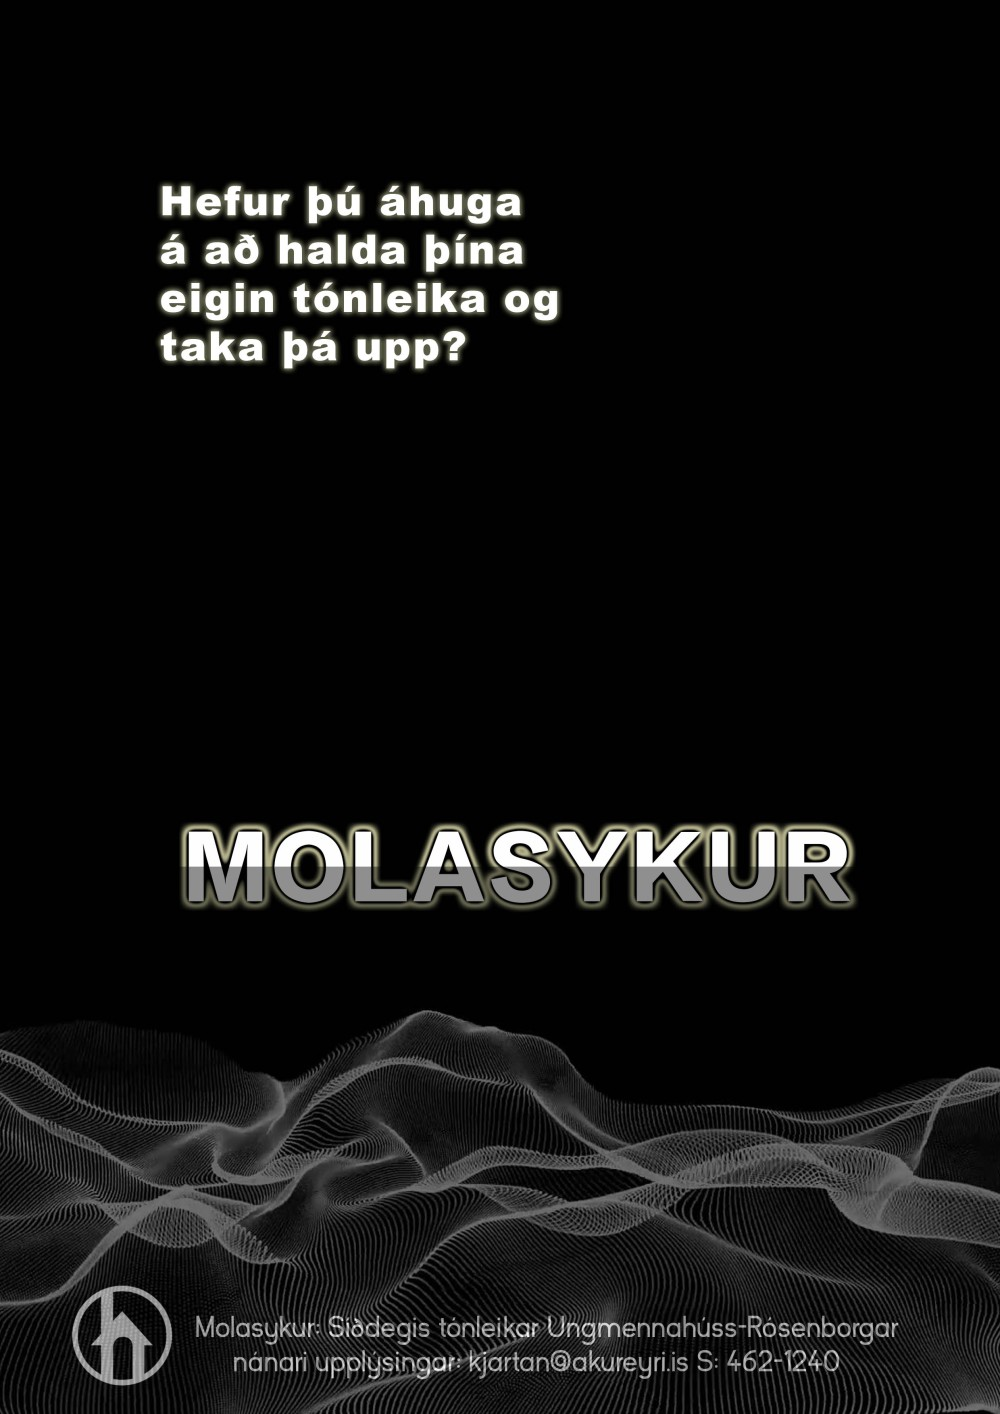 molasykur pitch plakat